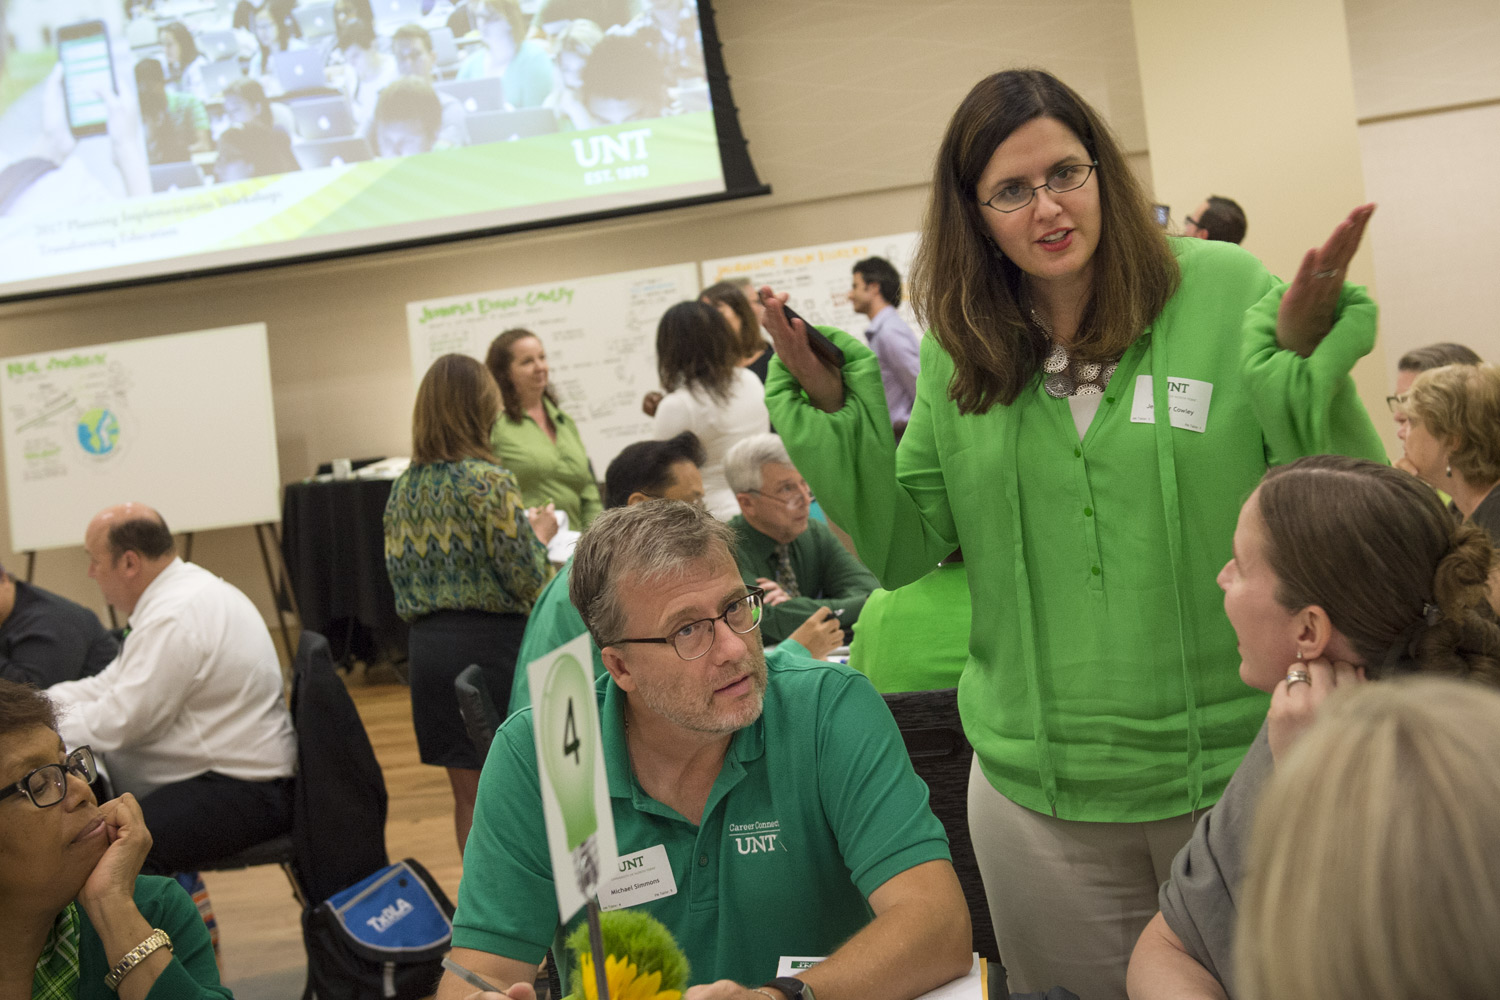 UNT Provost and Vice President for Academic Affairs Jennifer Evans-Cowley